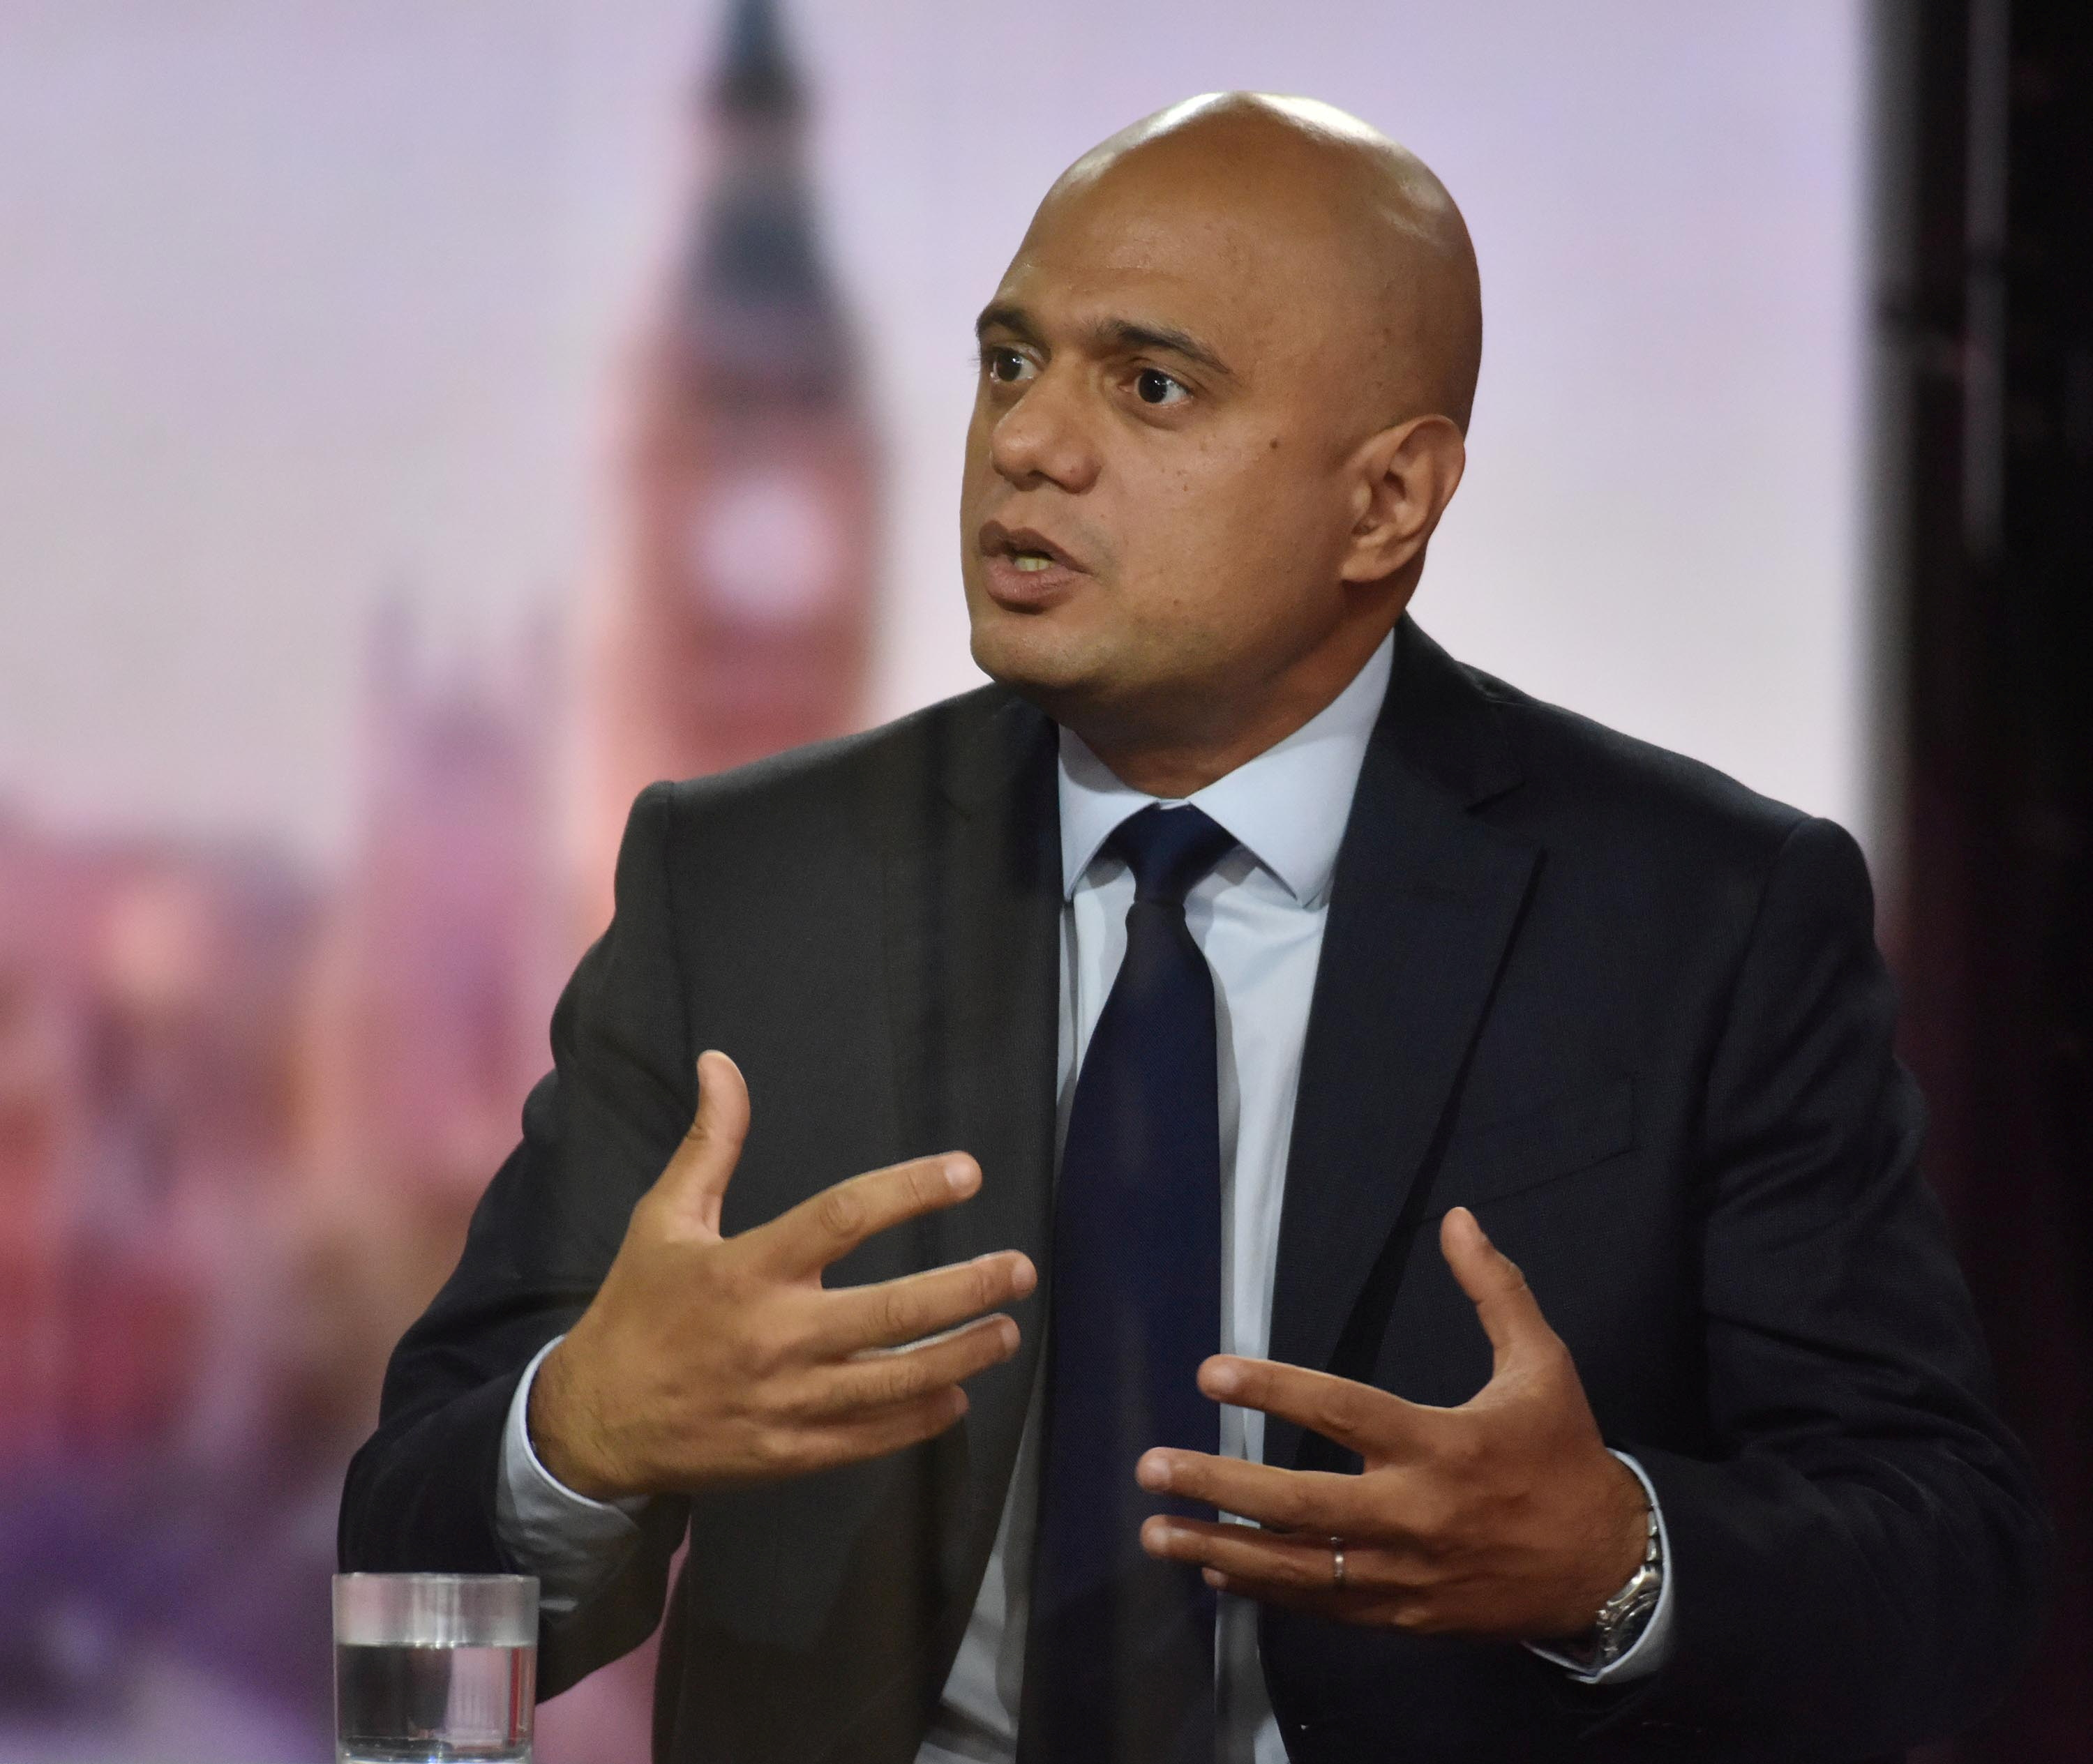 Britain's Health Secretary Sajid Javid talks as he appears as a guest on the Andrew Marr Show, at the BBC headquarters in London, Britain September 12, 2021. Jeff Overs/BBC/Handout via REUTERS